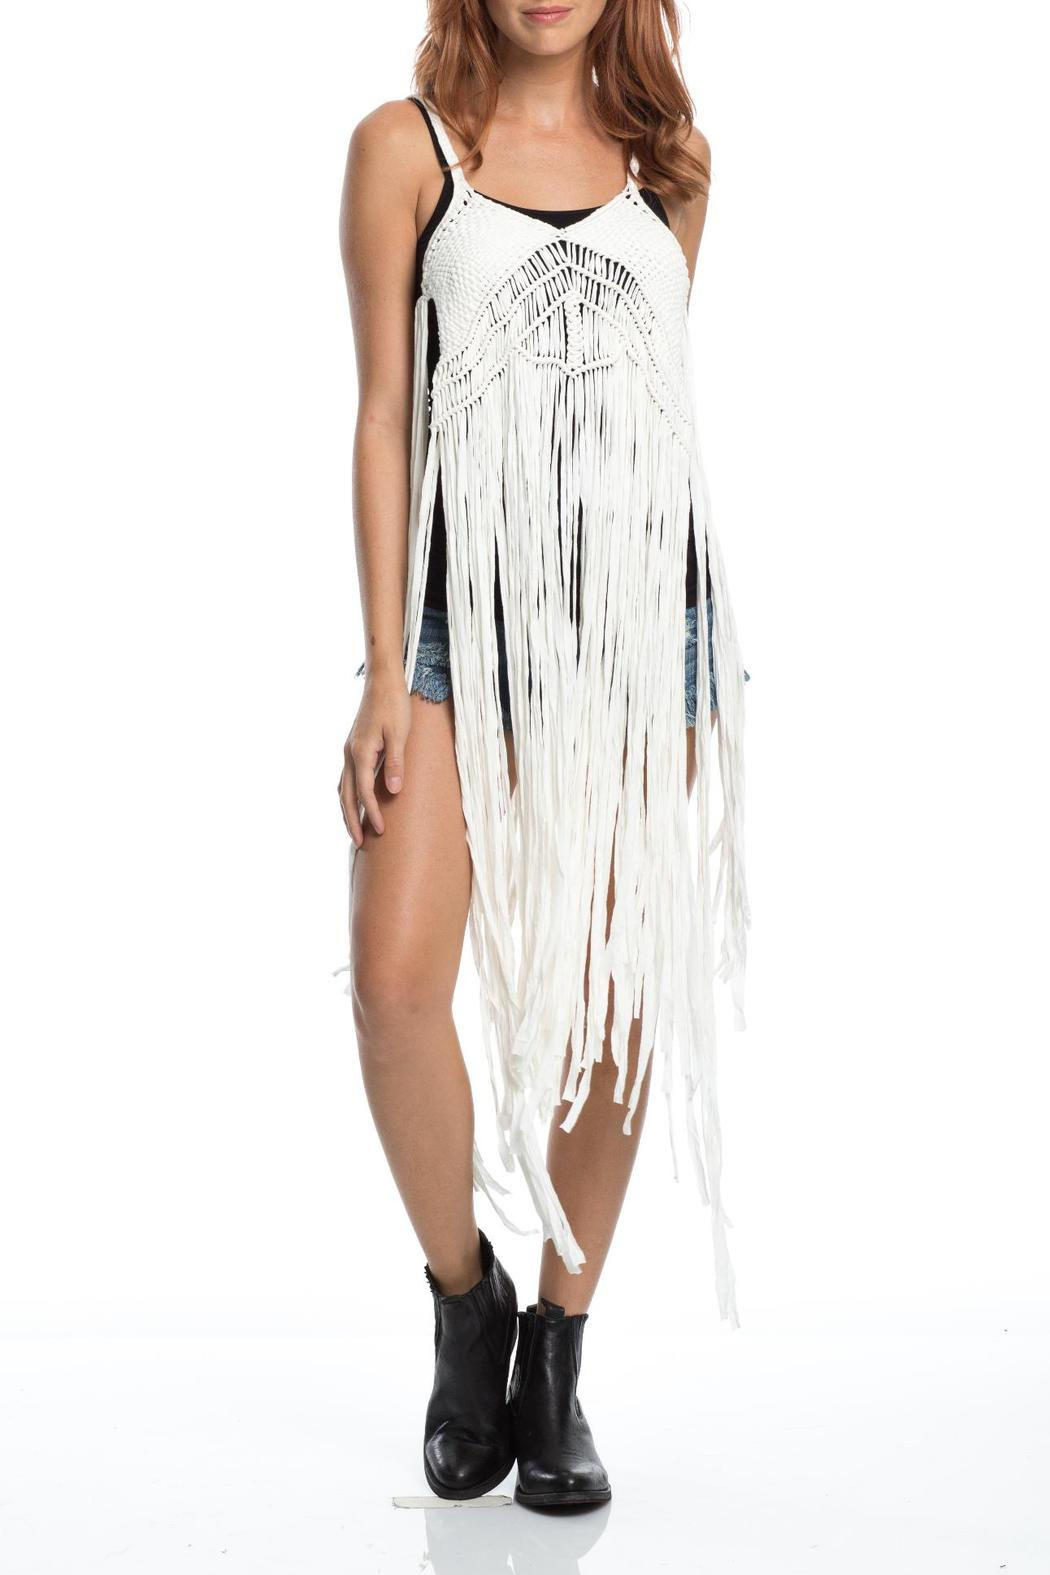 Elan Long Fringe Top From Florida By Best Beach Boutique